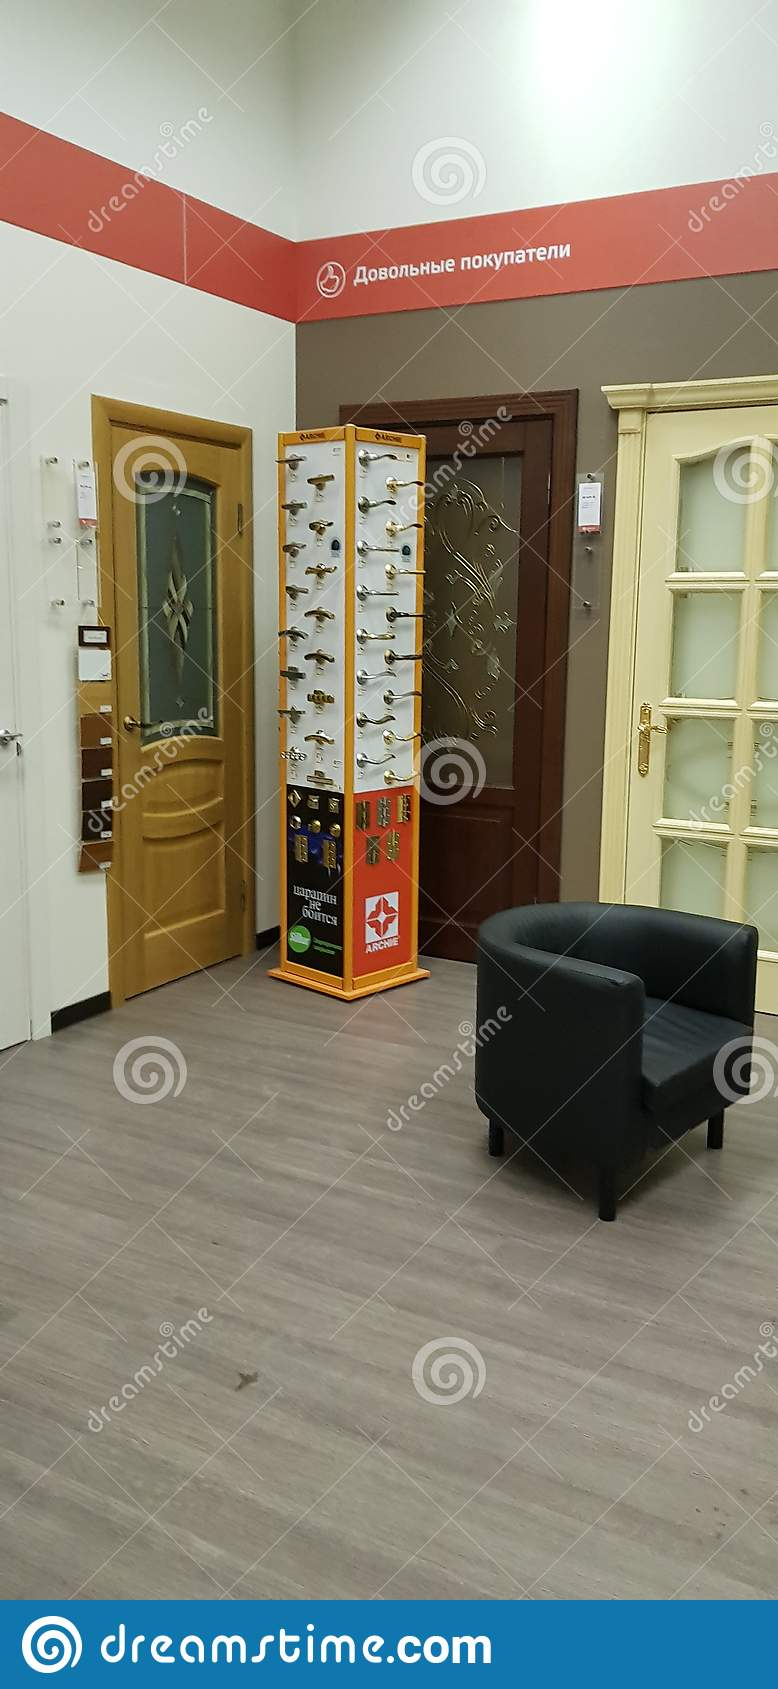 Interior Doors For Sale In A Specialized Store Editorial Photography Image Of Materials Interior 142443652